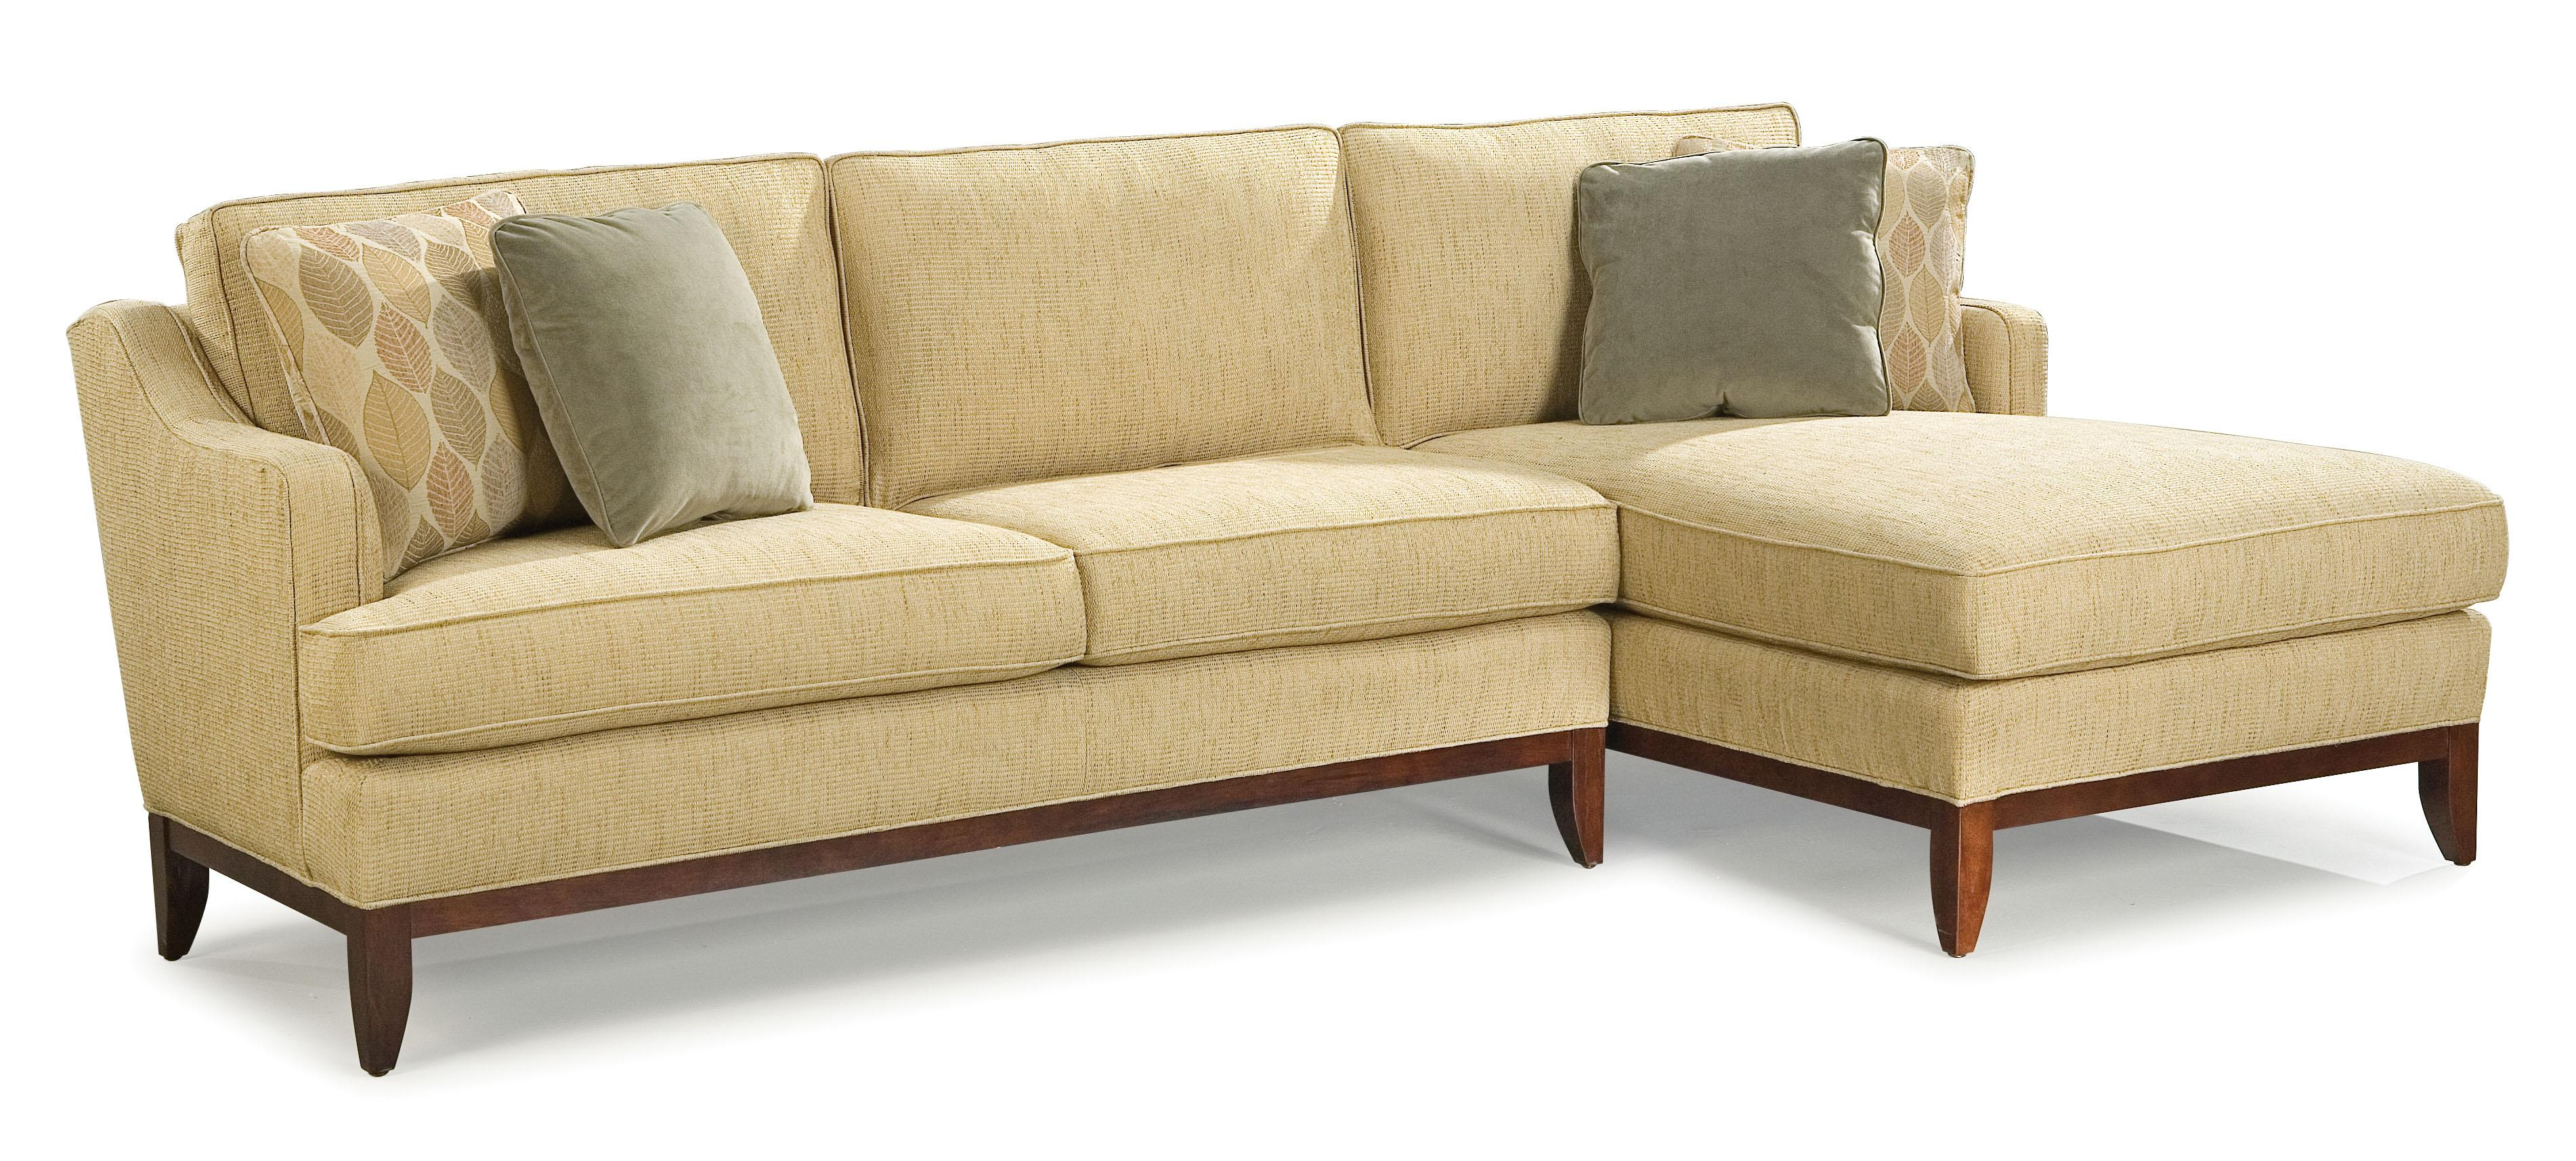 fairfield sofa bed mckinley leather 5194 2714 contemporary sectional with right side